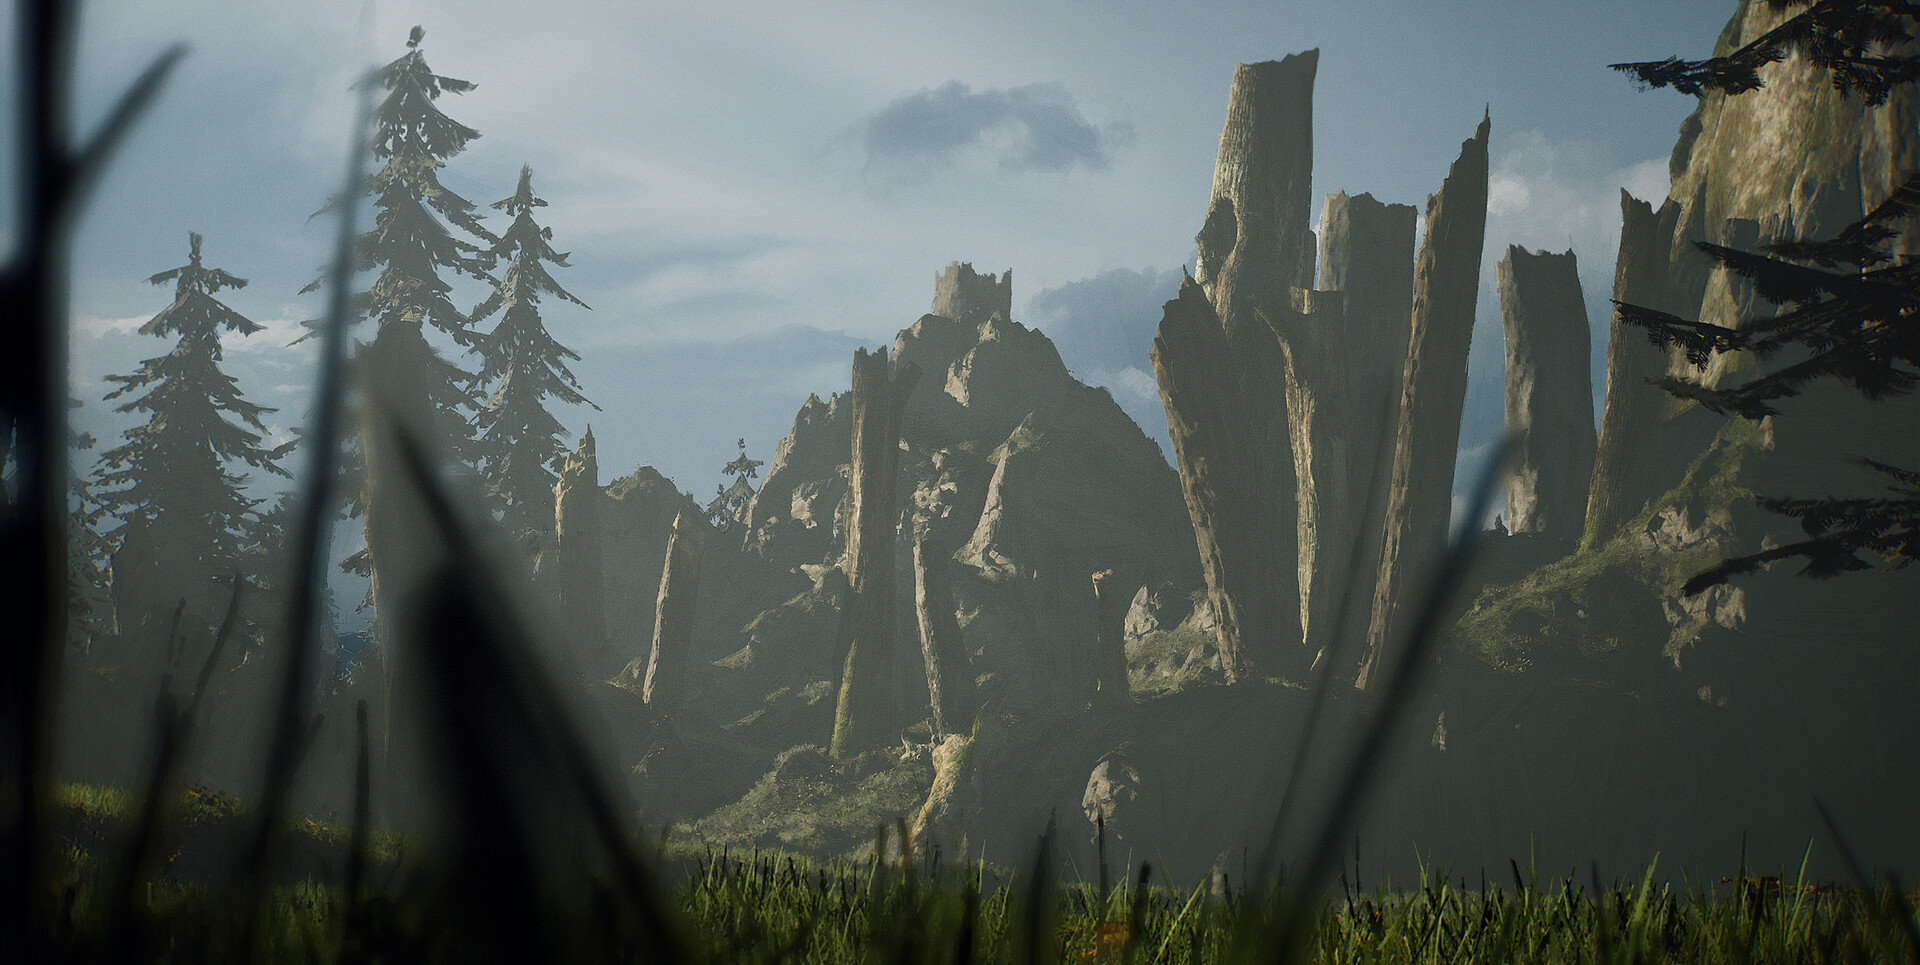 Screenshot from landscape before turning into scene